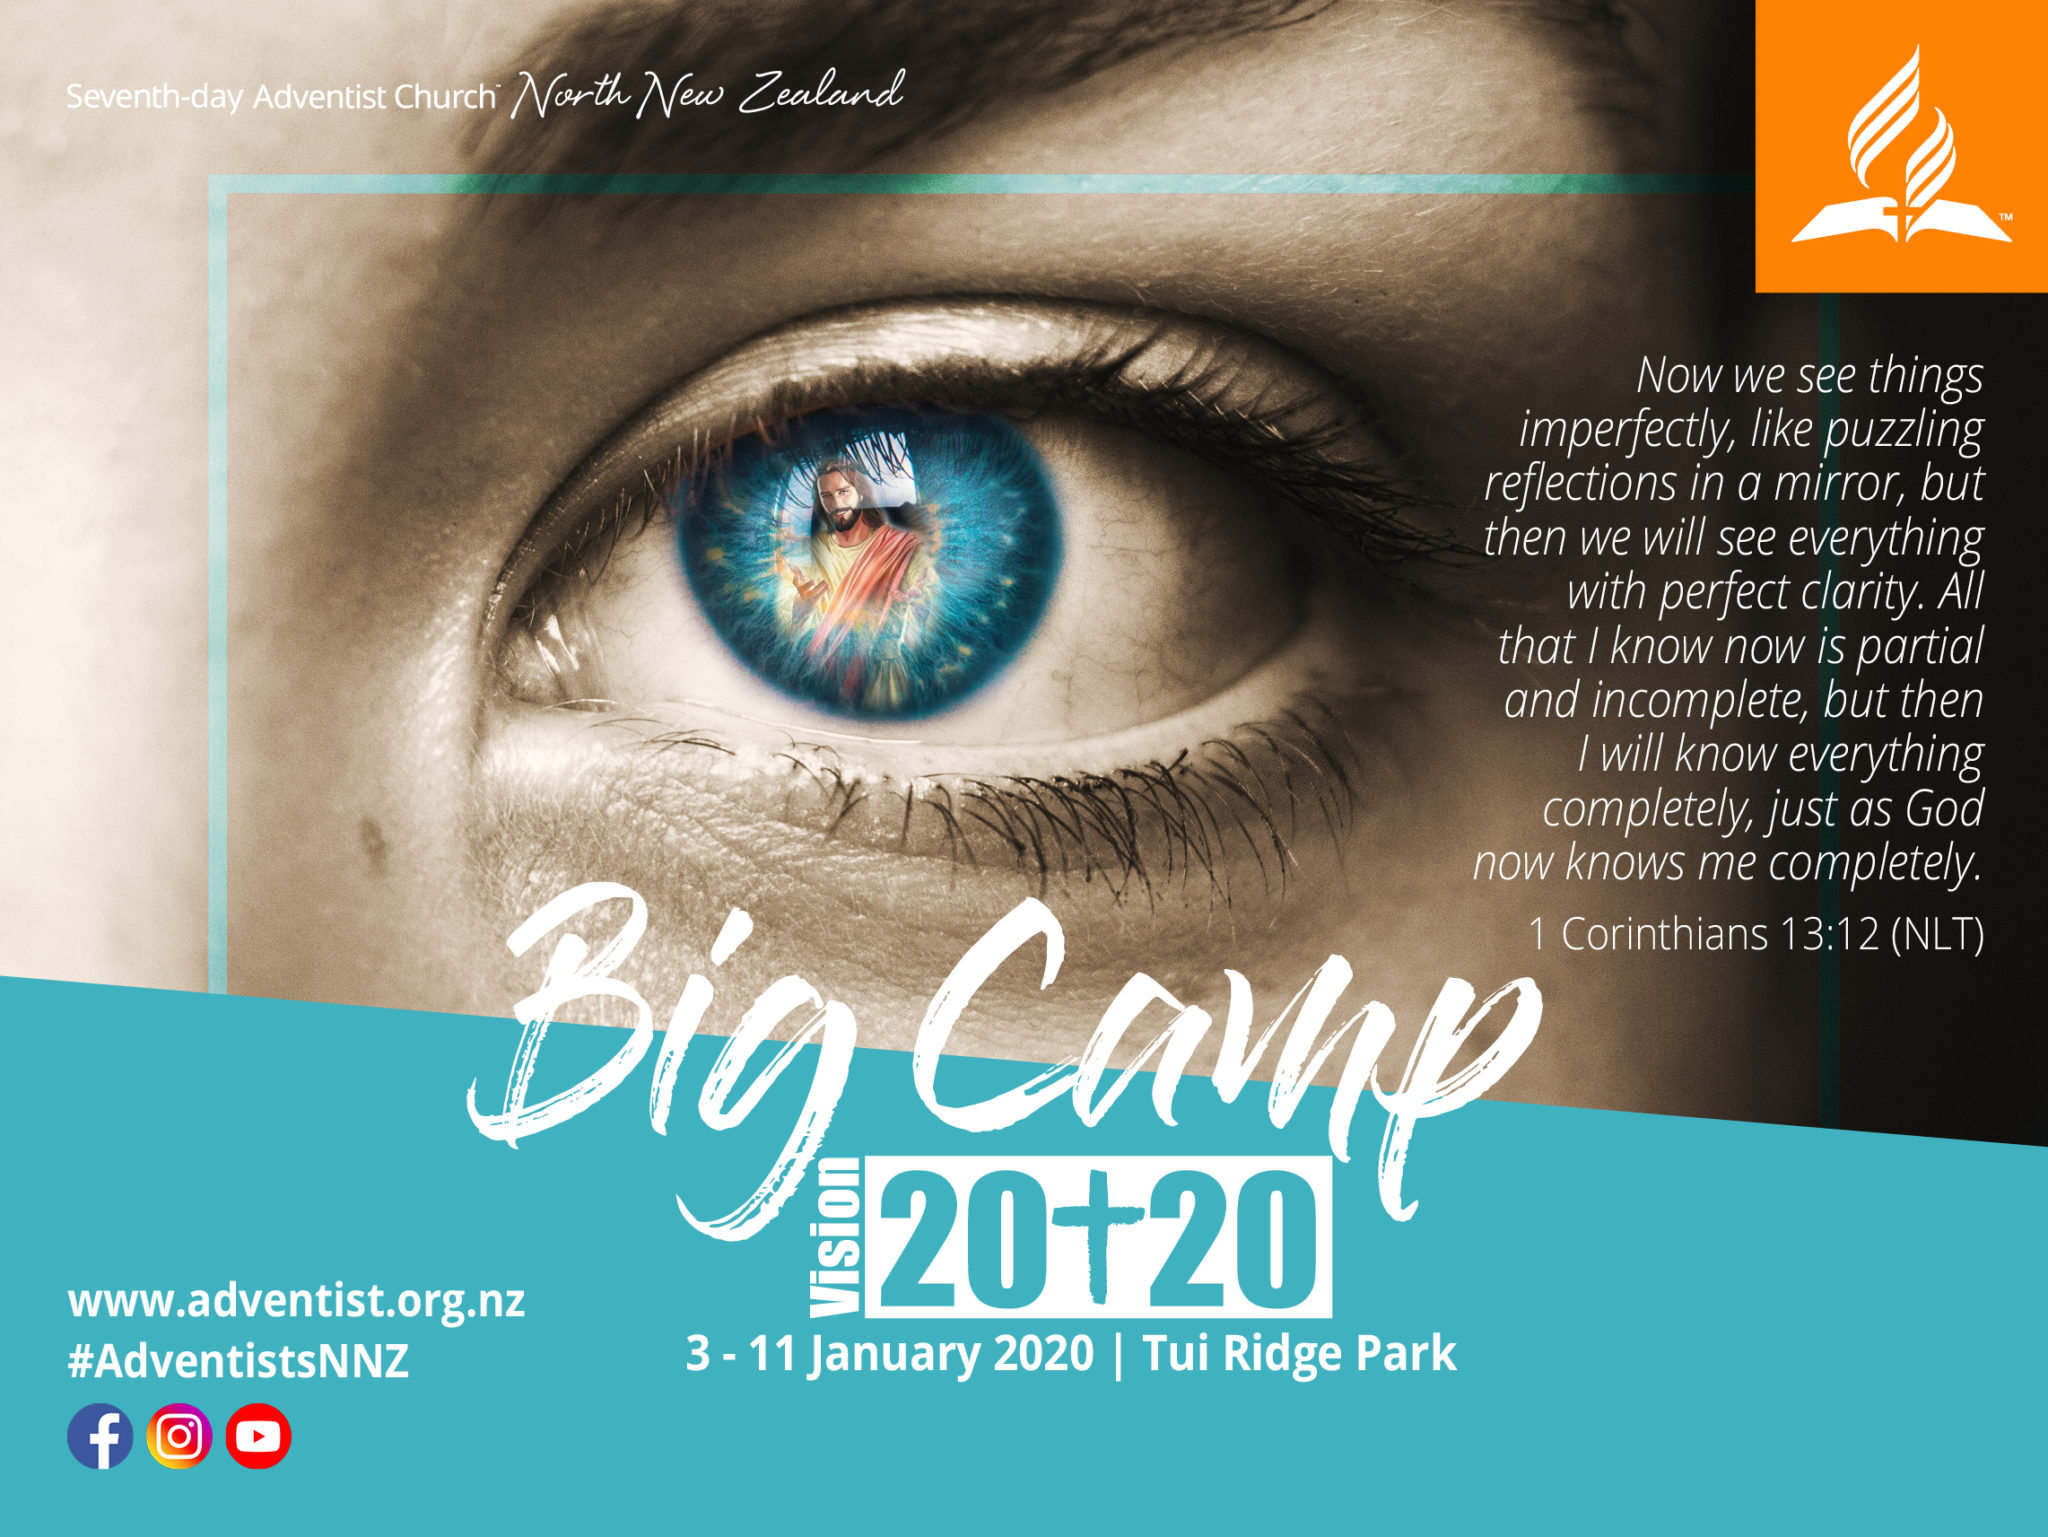 Big Camp 2020 @ Tui Ridge Park